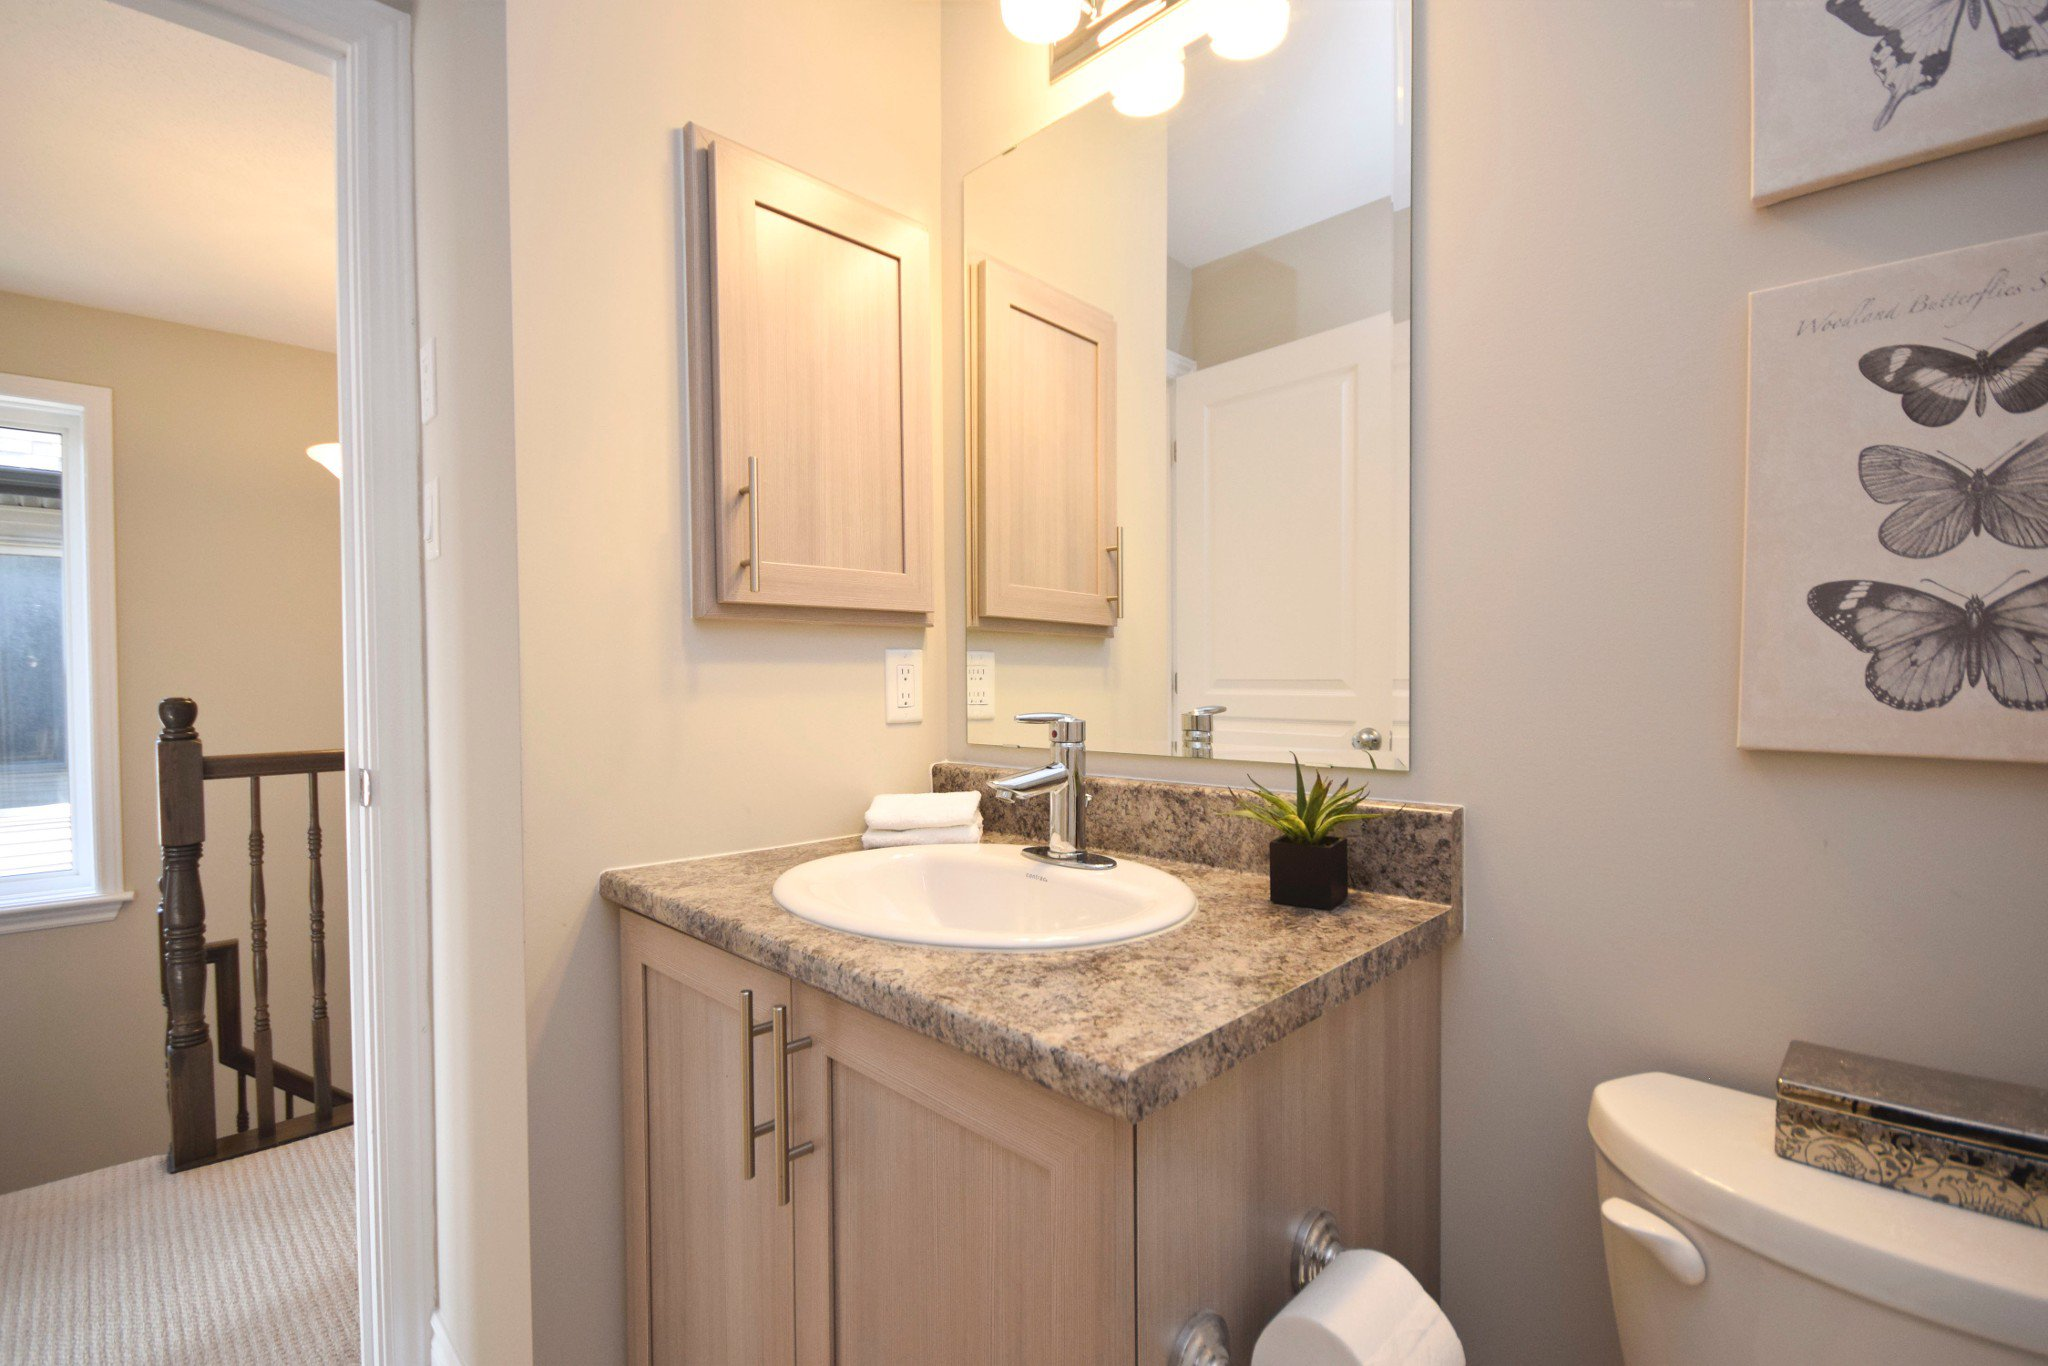 Photo 54: Photos: 131 Popplewell Crescent in Ottawa: Cedargrove / Fraserdale House for sale (Barrhaven)  : MLS®# 1130335